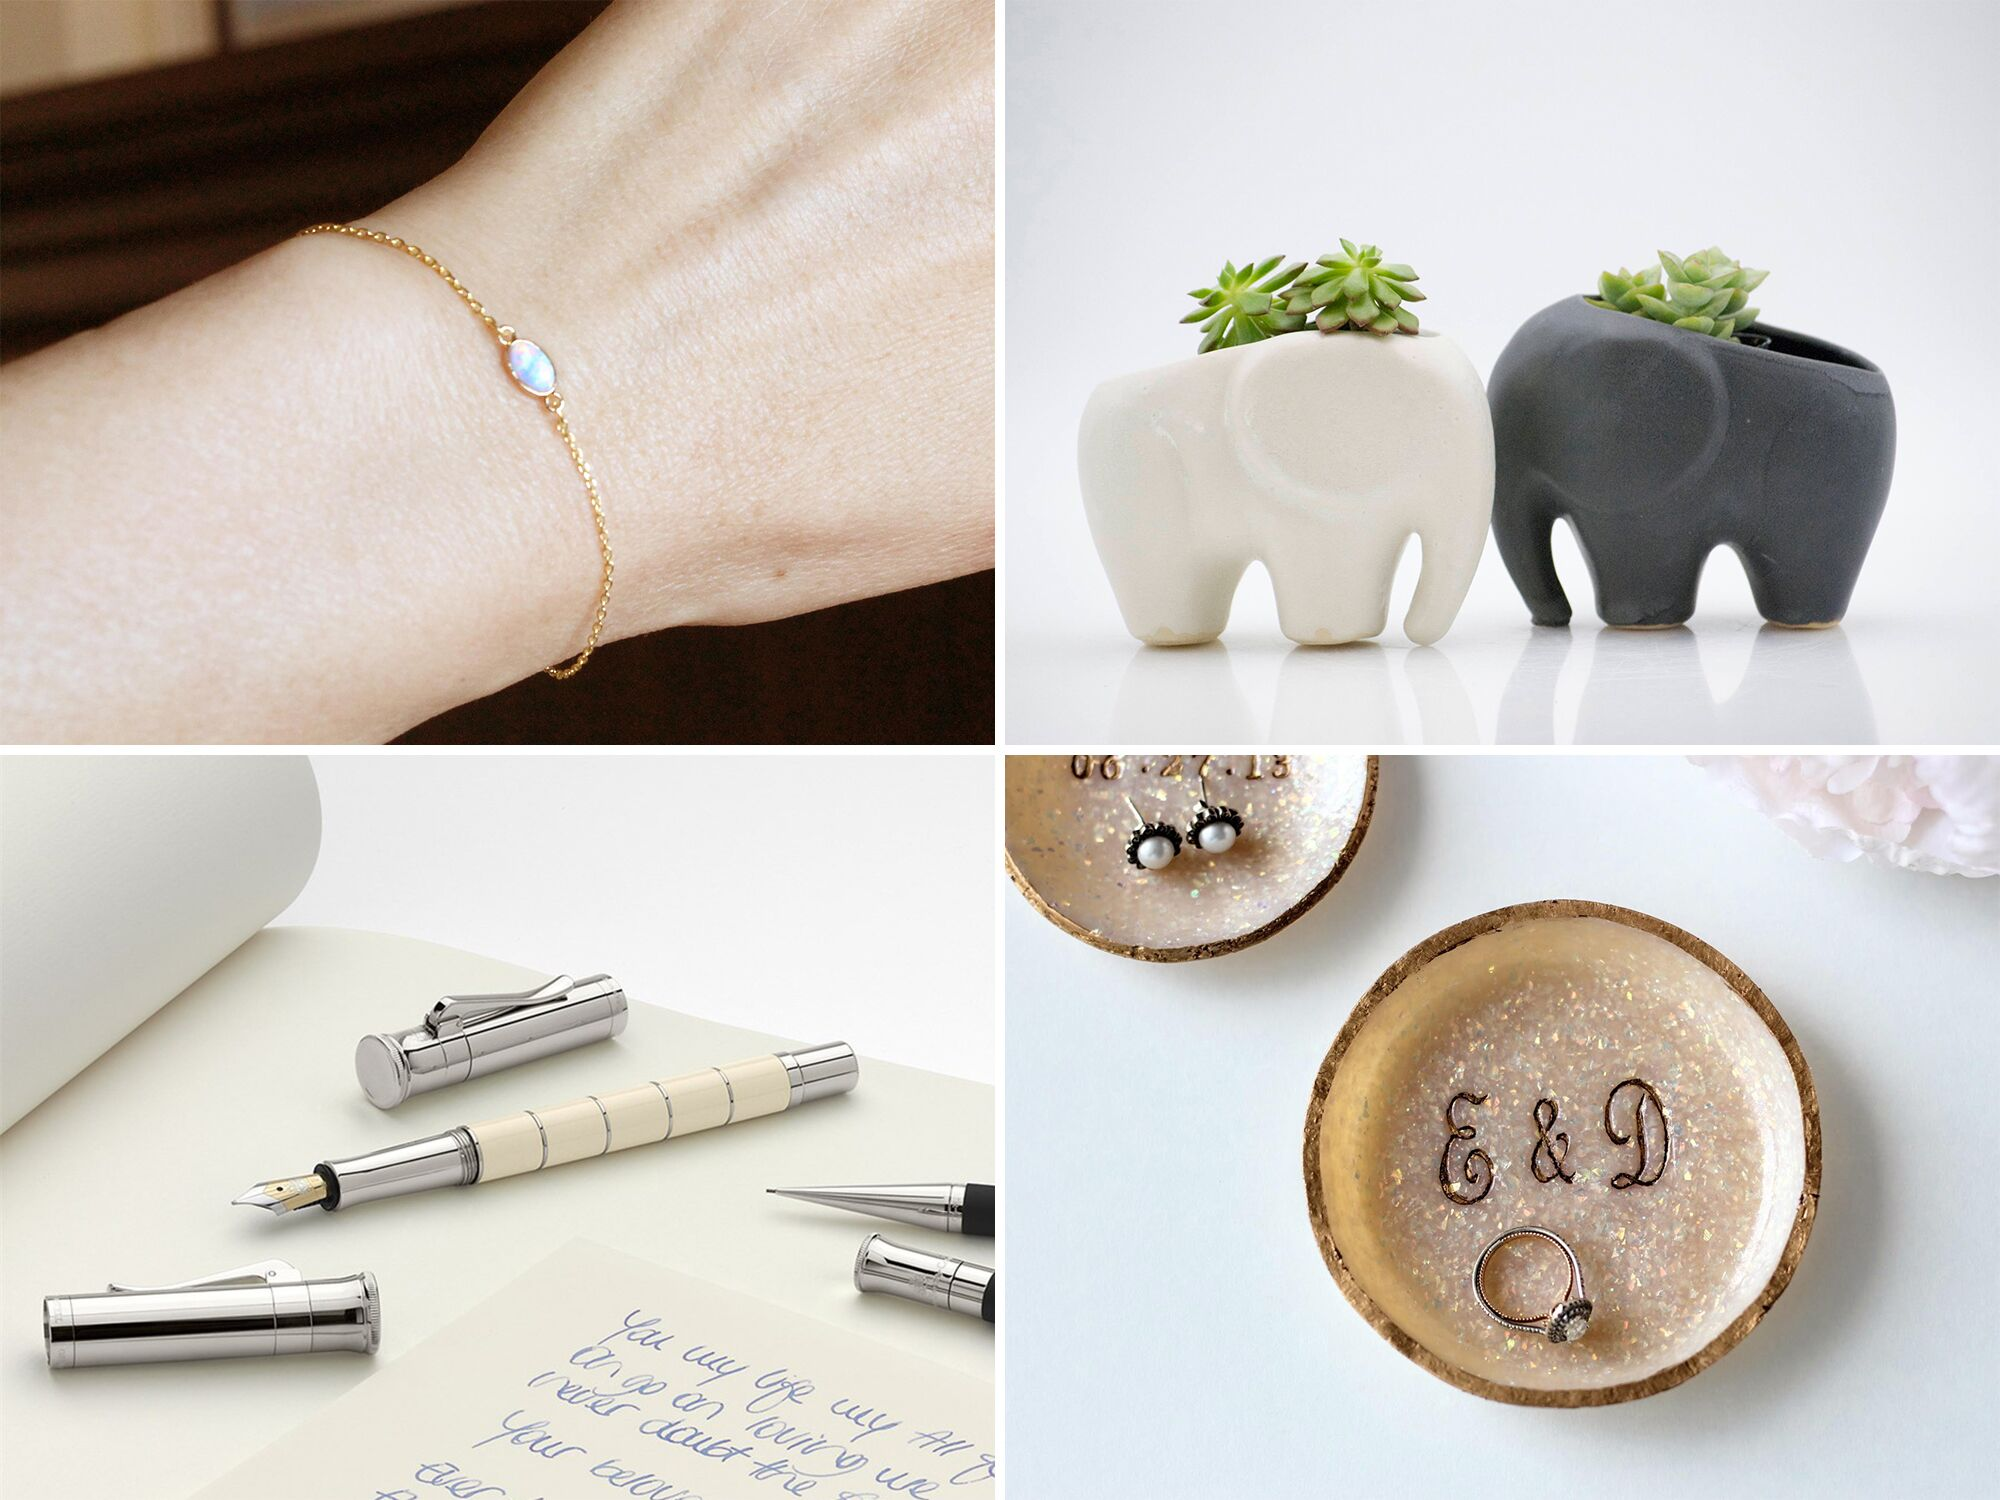 14 Year Anniversary Gift Ideas For Him Her And Them